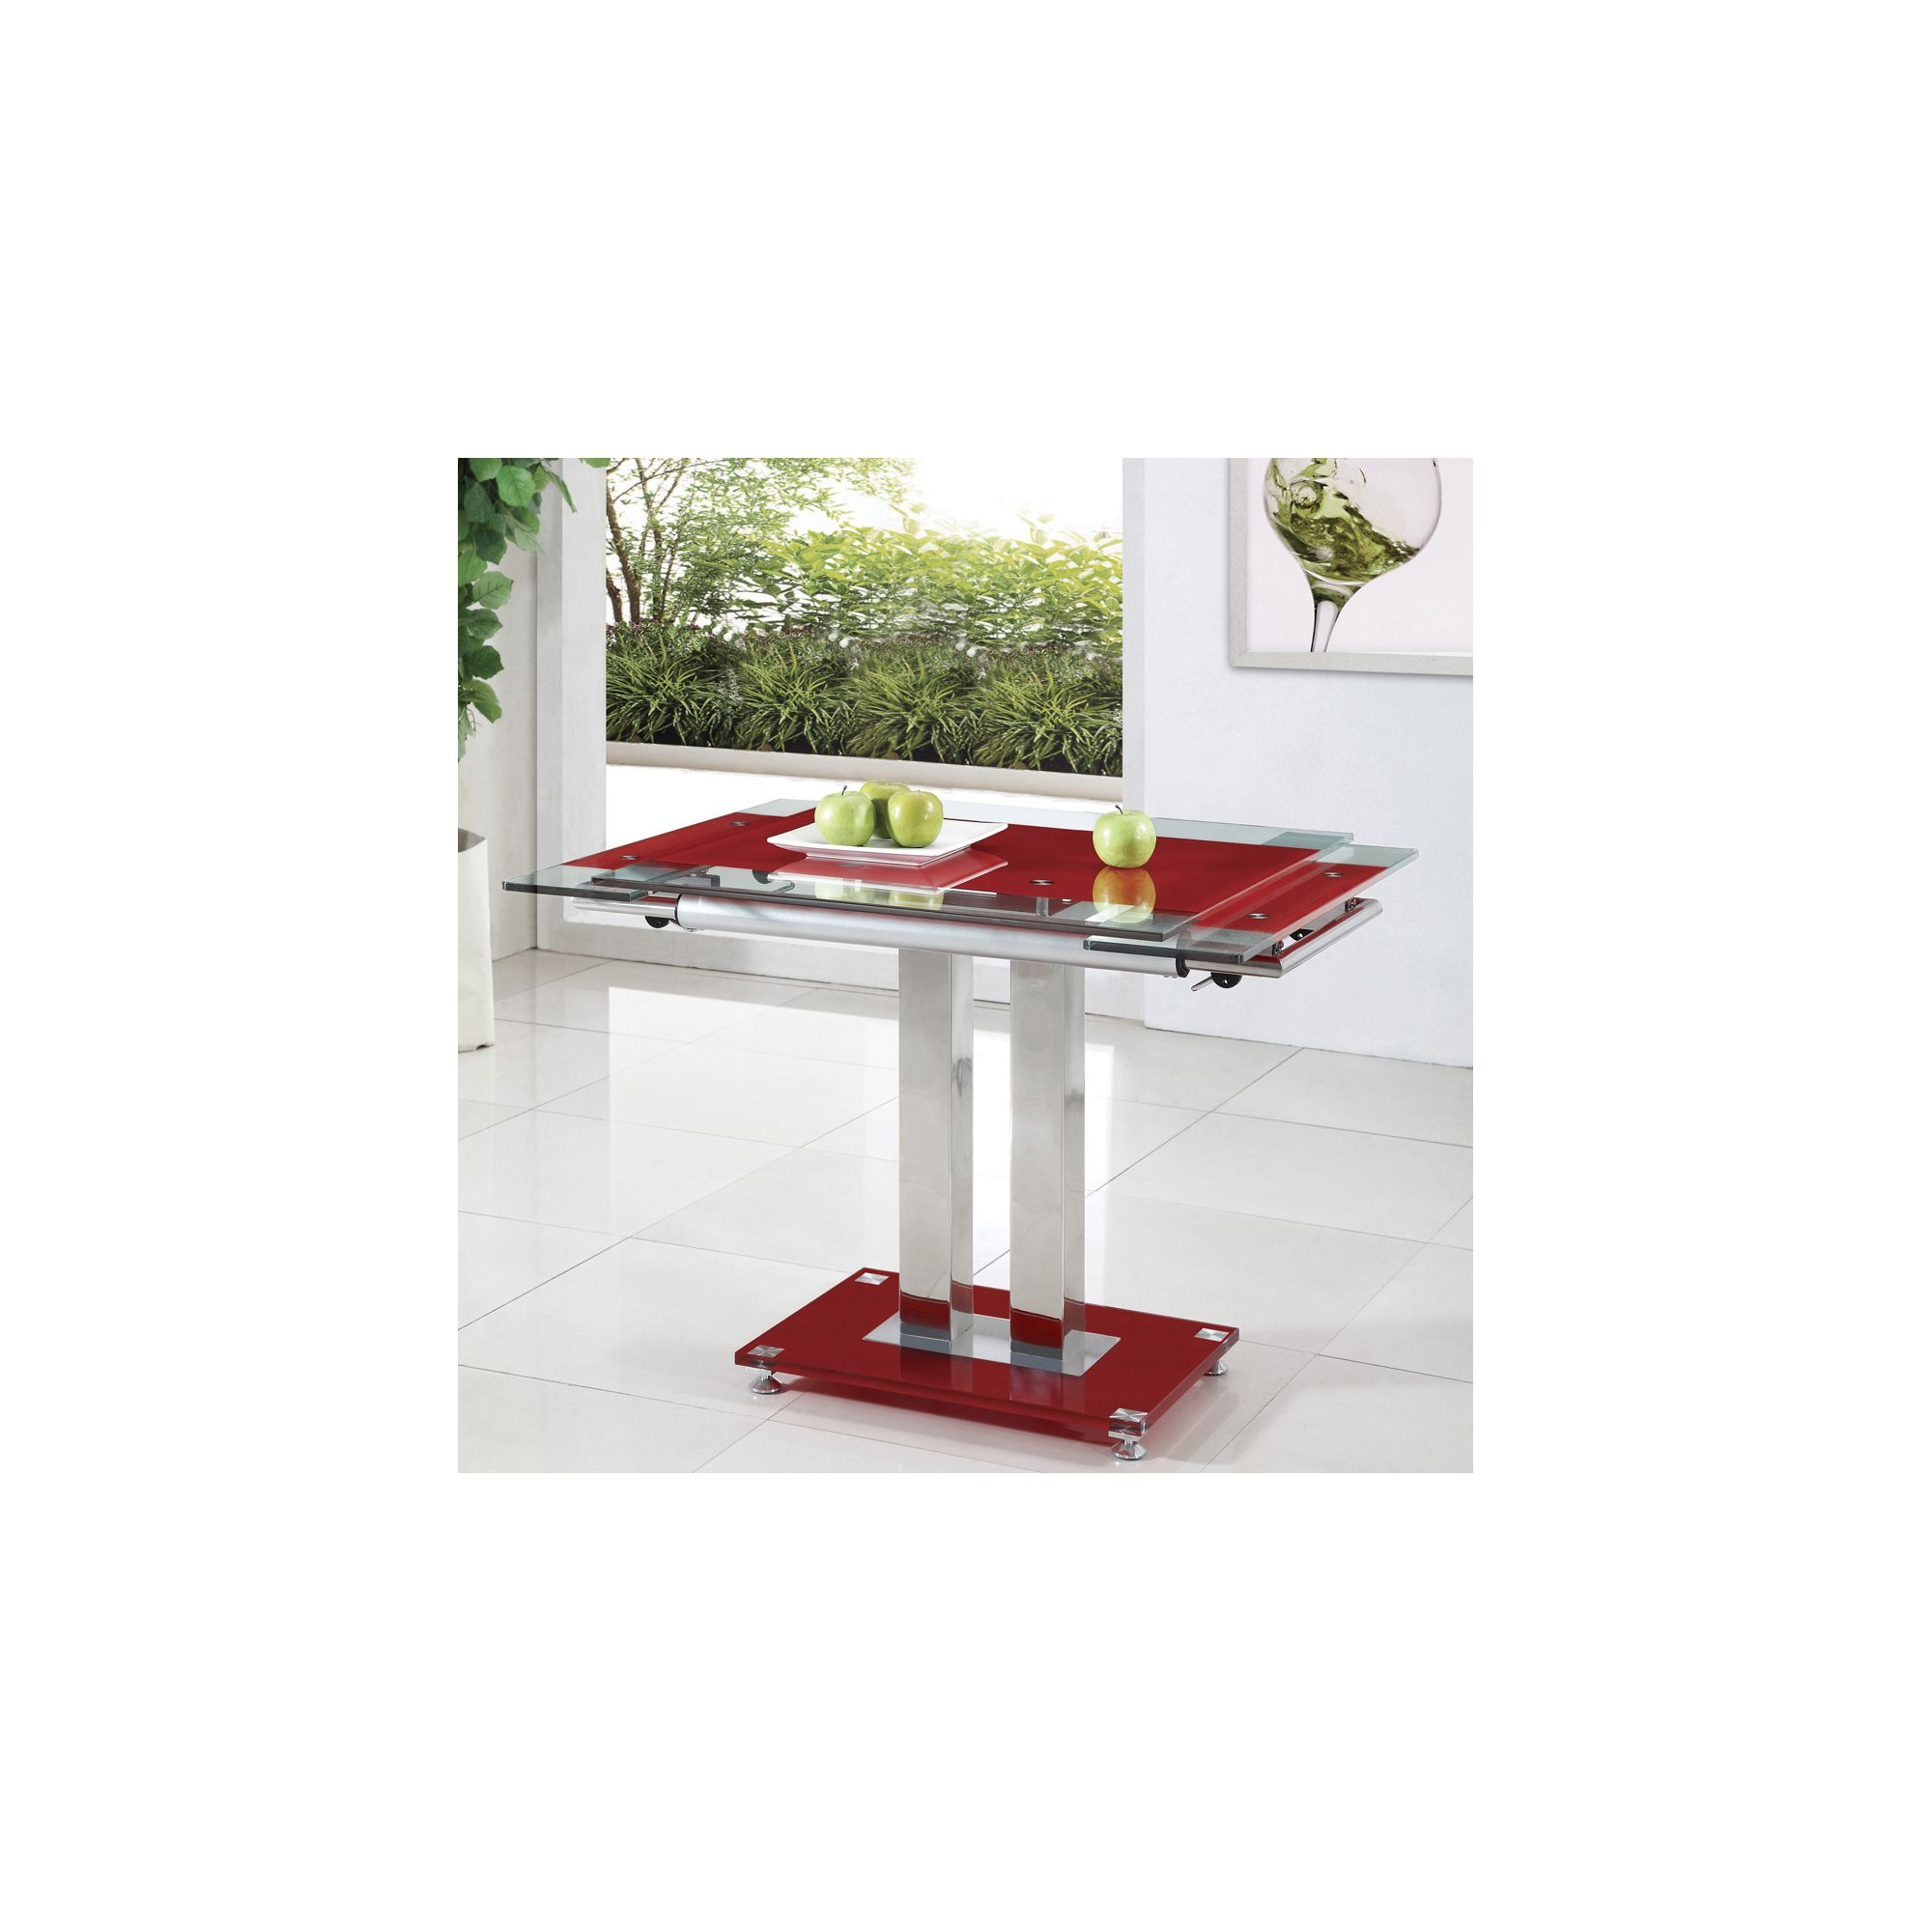 Giomani Designs Gio Coffee Table - Red at Tesco Direct